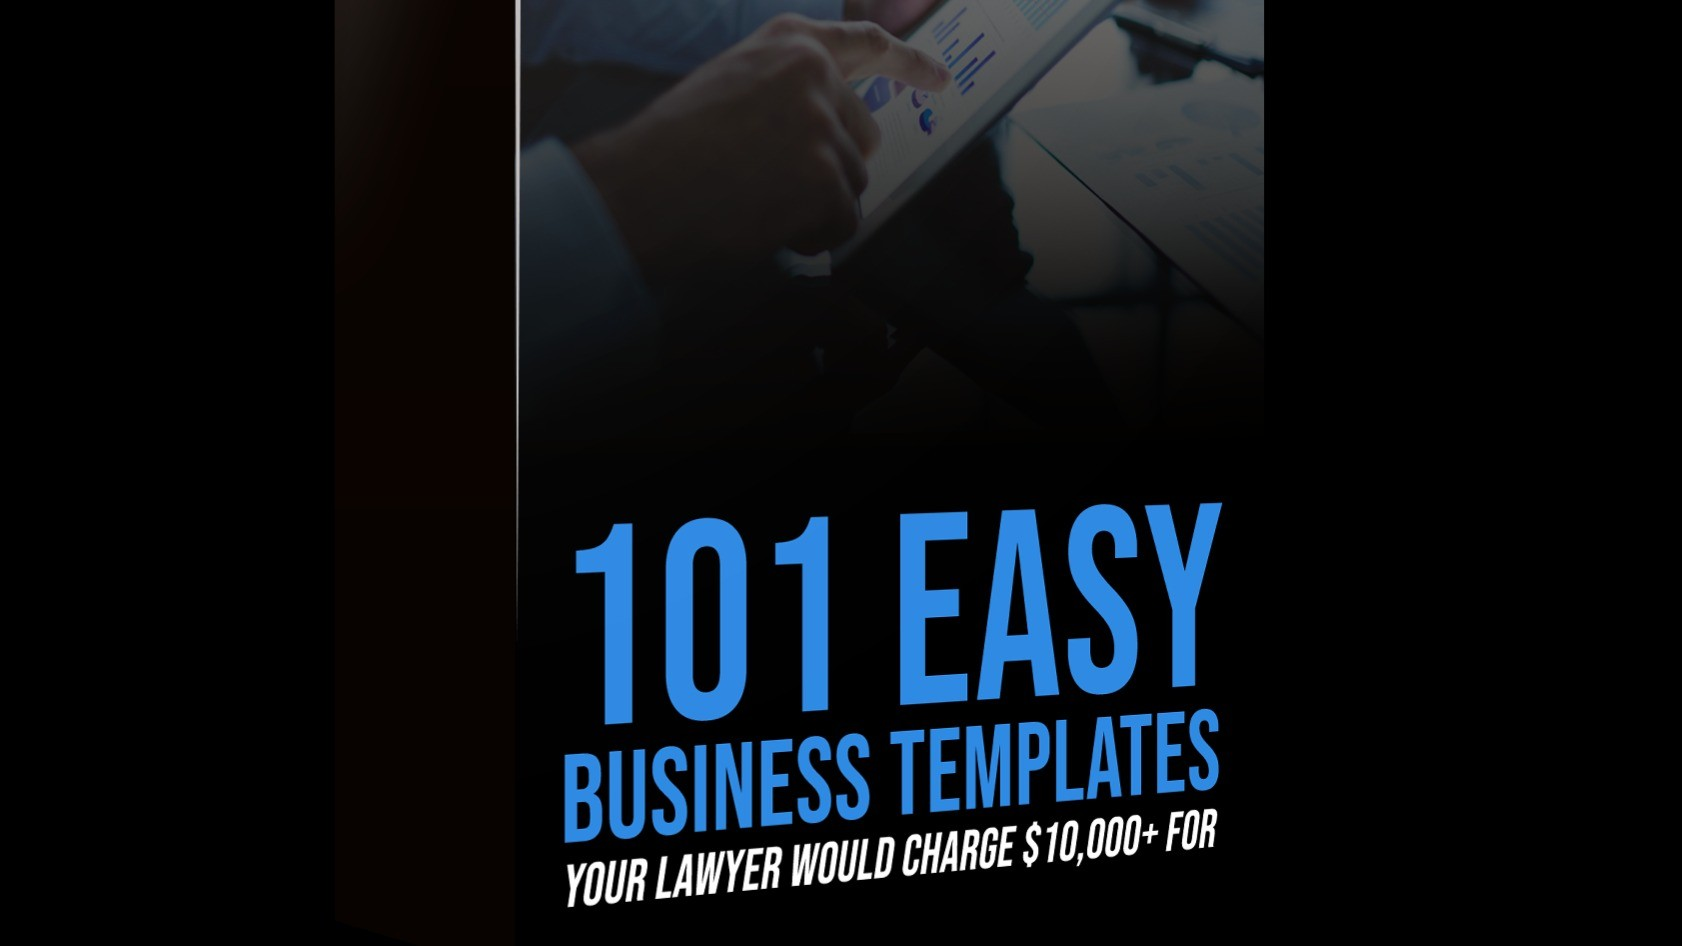 AppSumo Deal for 101 Easy Business Templates Your Lawyer Would Charge $10,000+ For